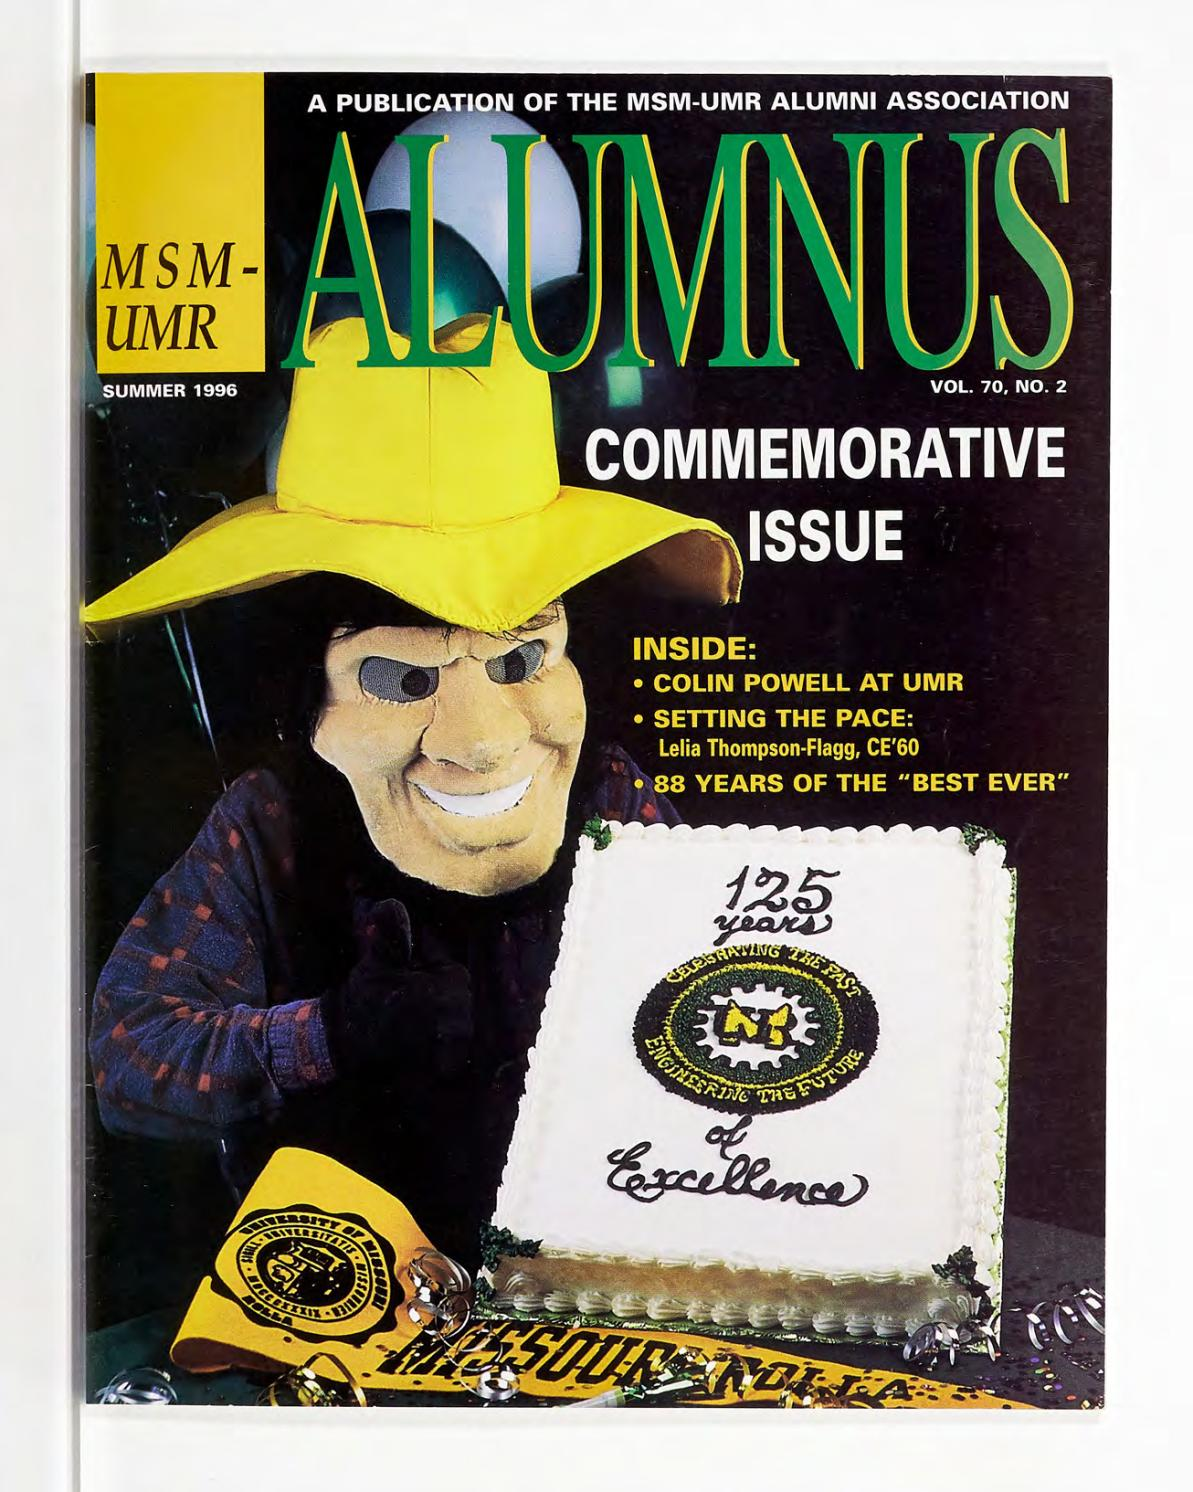 Missouri S T Magazine Summer 1996 By Missouri S T Library And Learning Resources Curtis Laws Wilson Library Issuu